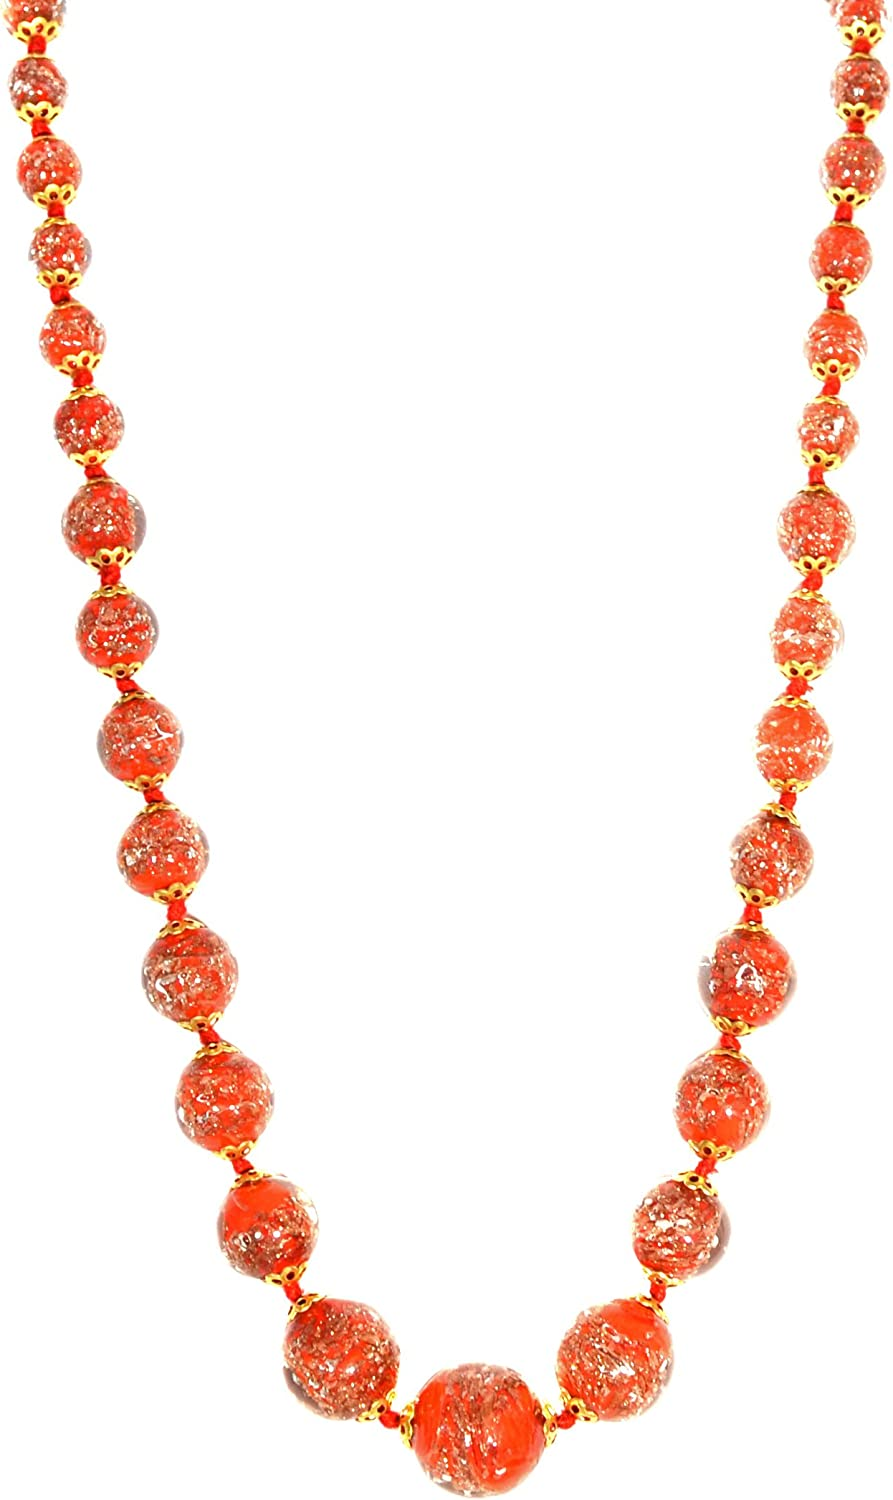 Just Give Me Jewels Venice Graduated Murano Sommerso Aventurina Glass Bead Strand Necklace in Red, 19+2